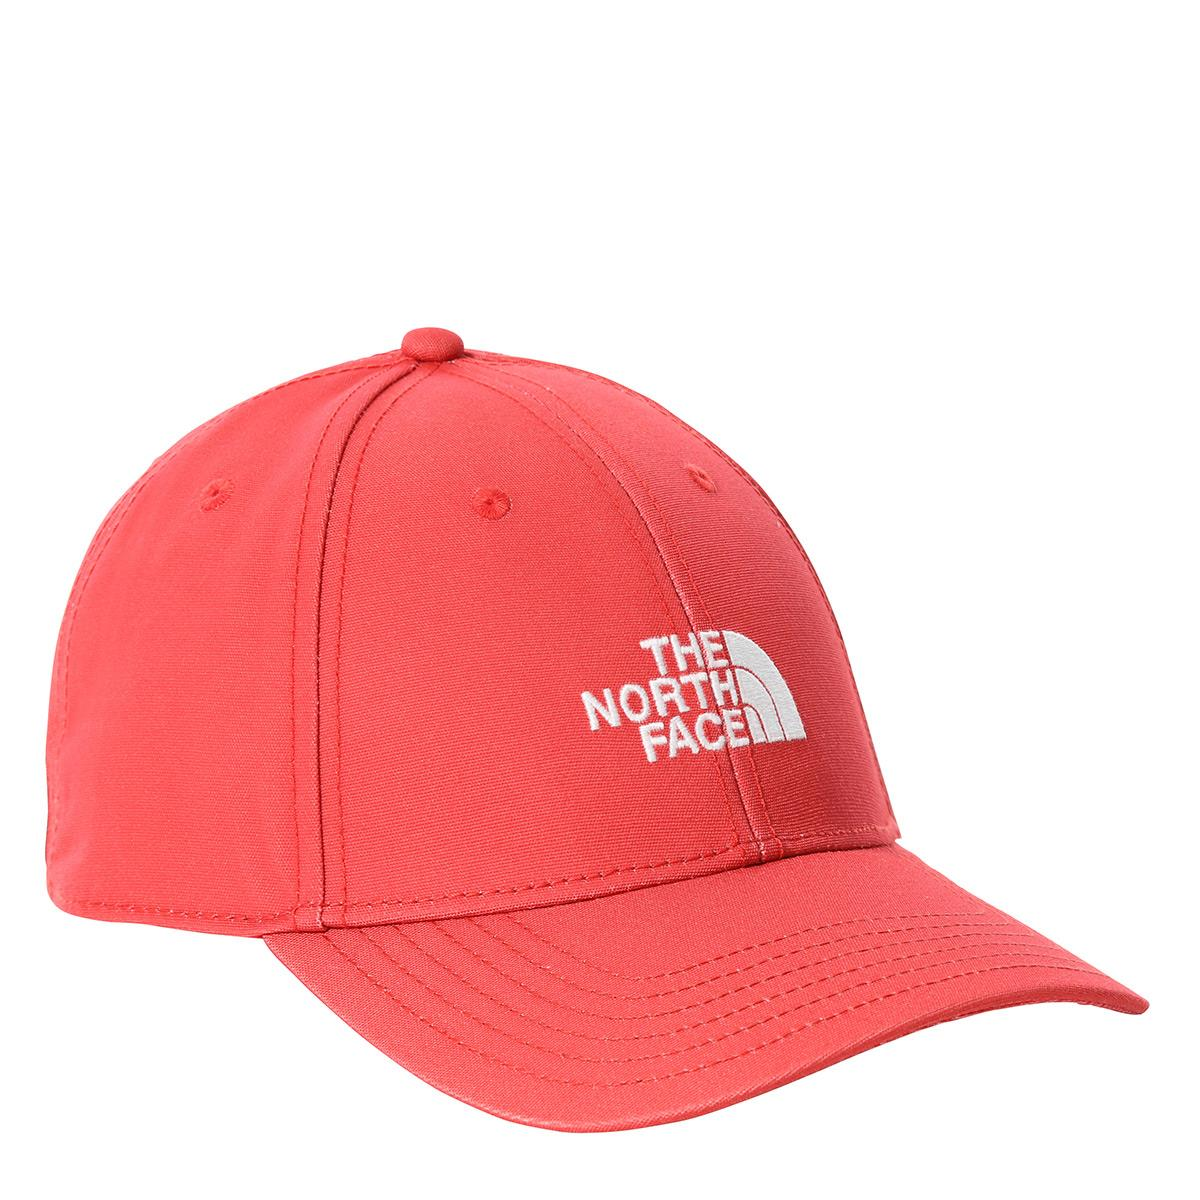 The North Face  RECYCLED 66 CLASSIC Şapka  Unisex